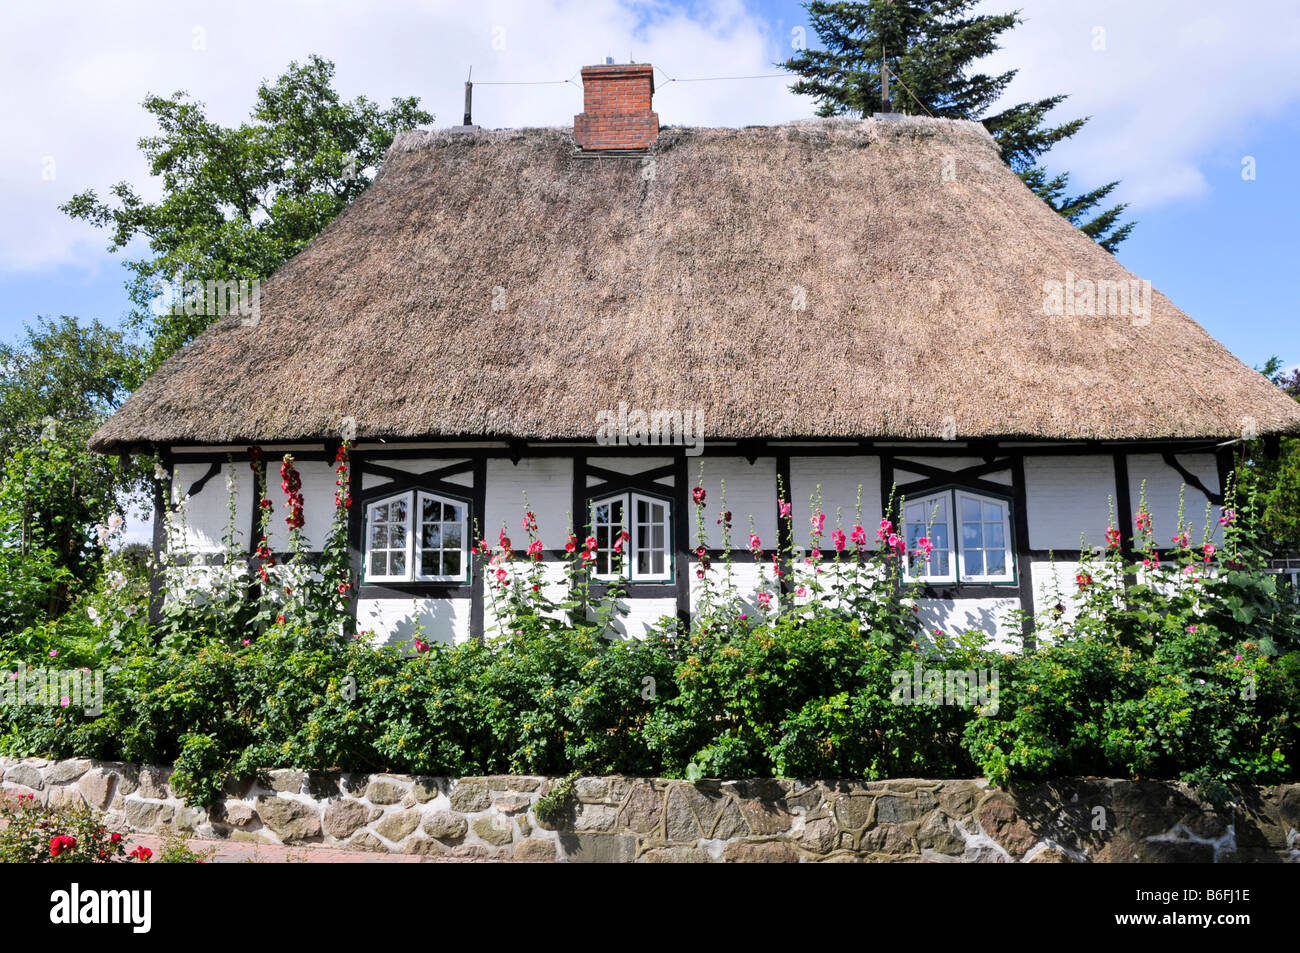 thatched roof house in sieseby schlei schleswig holstein germany stock photo royalty free. Black Bedroom Furniture Sets. Home Design Ideas